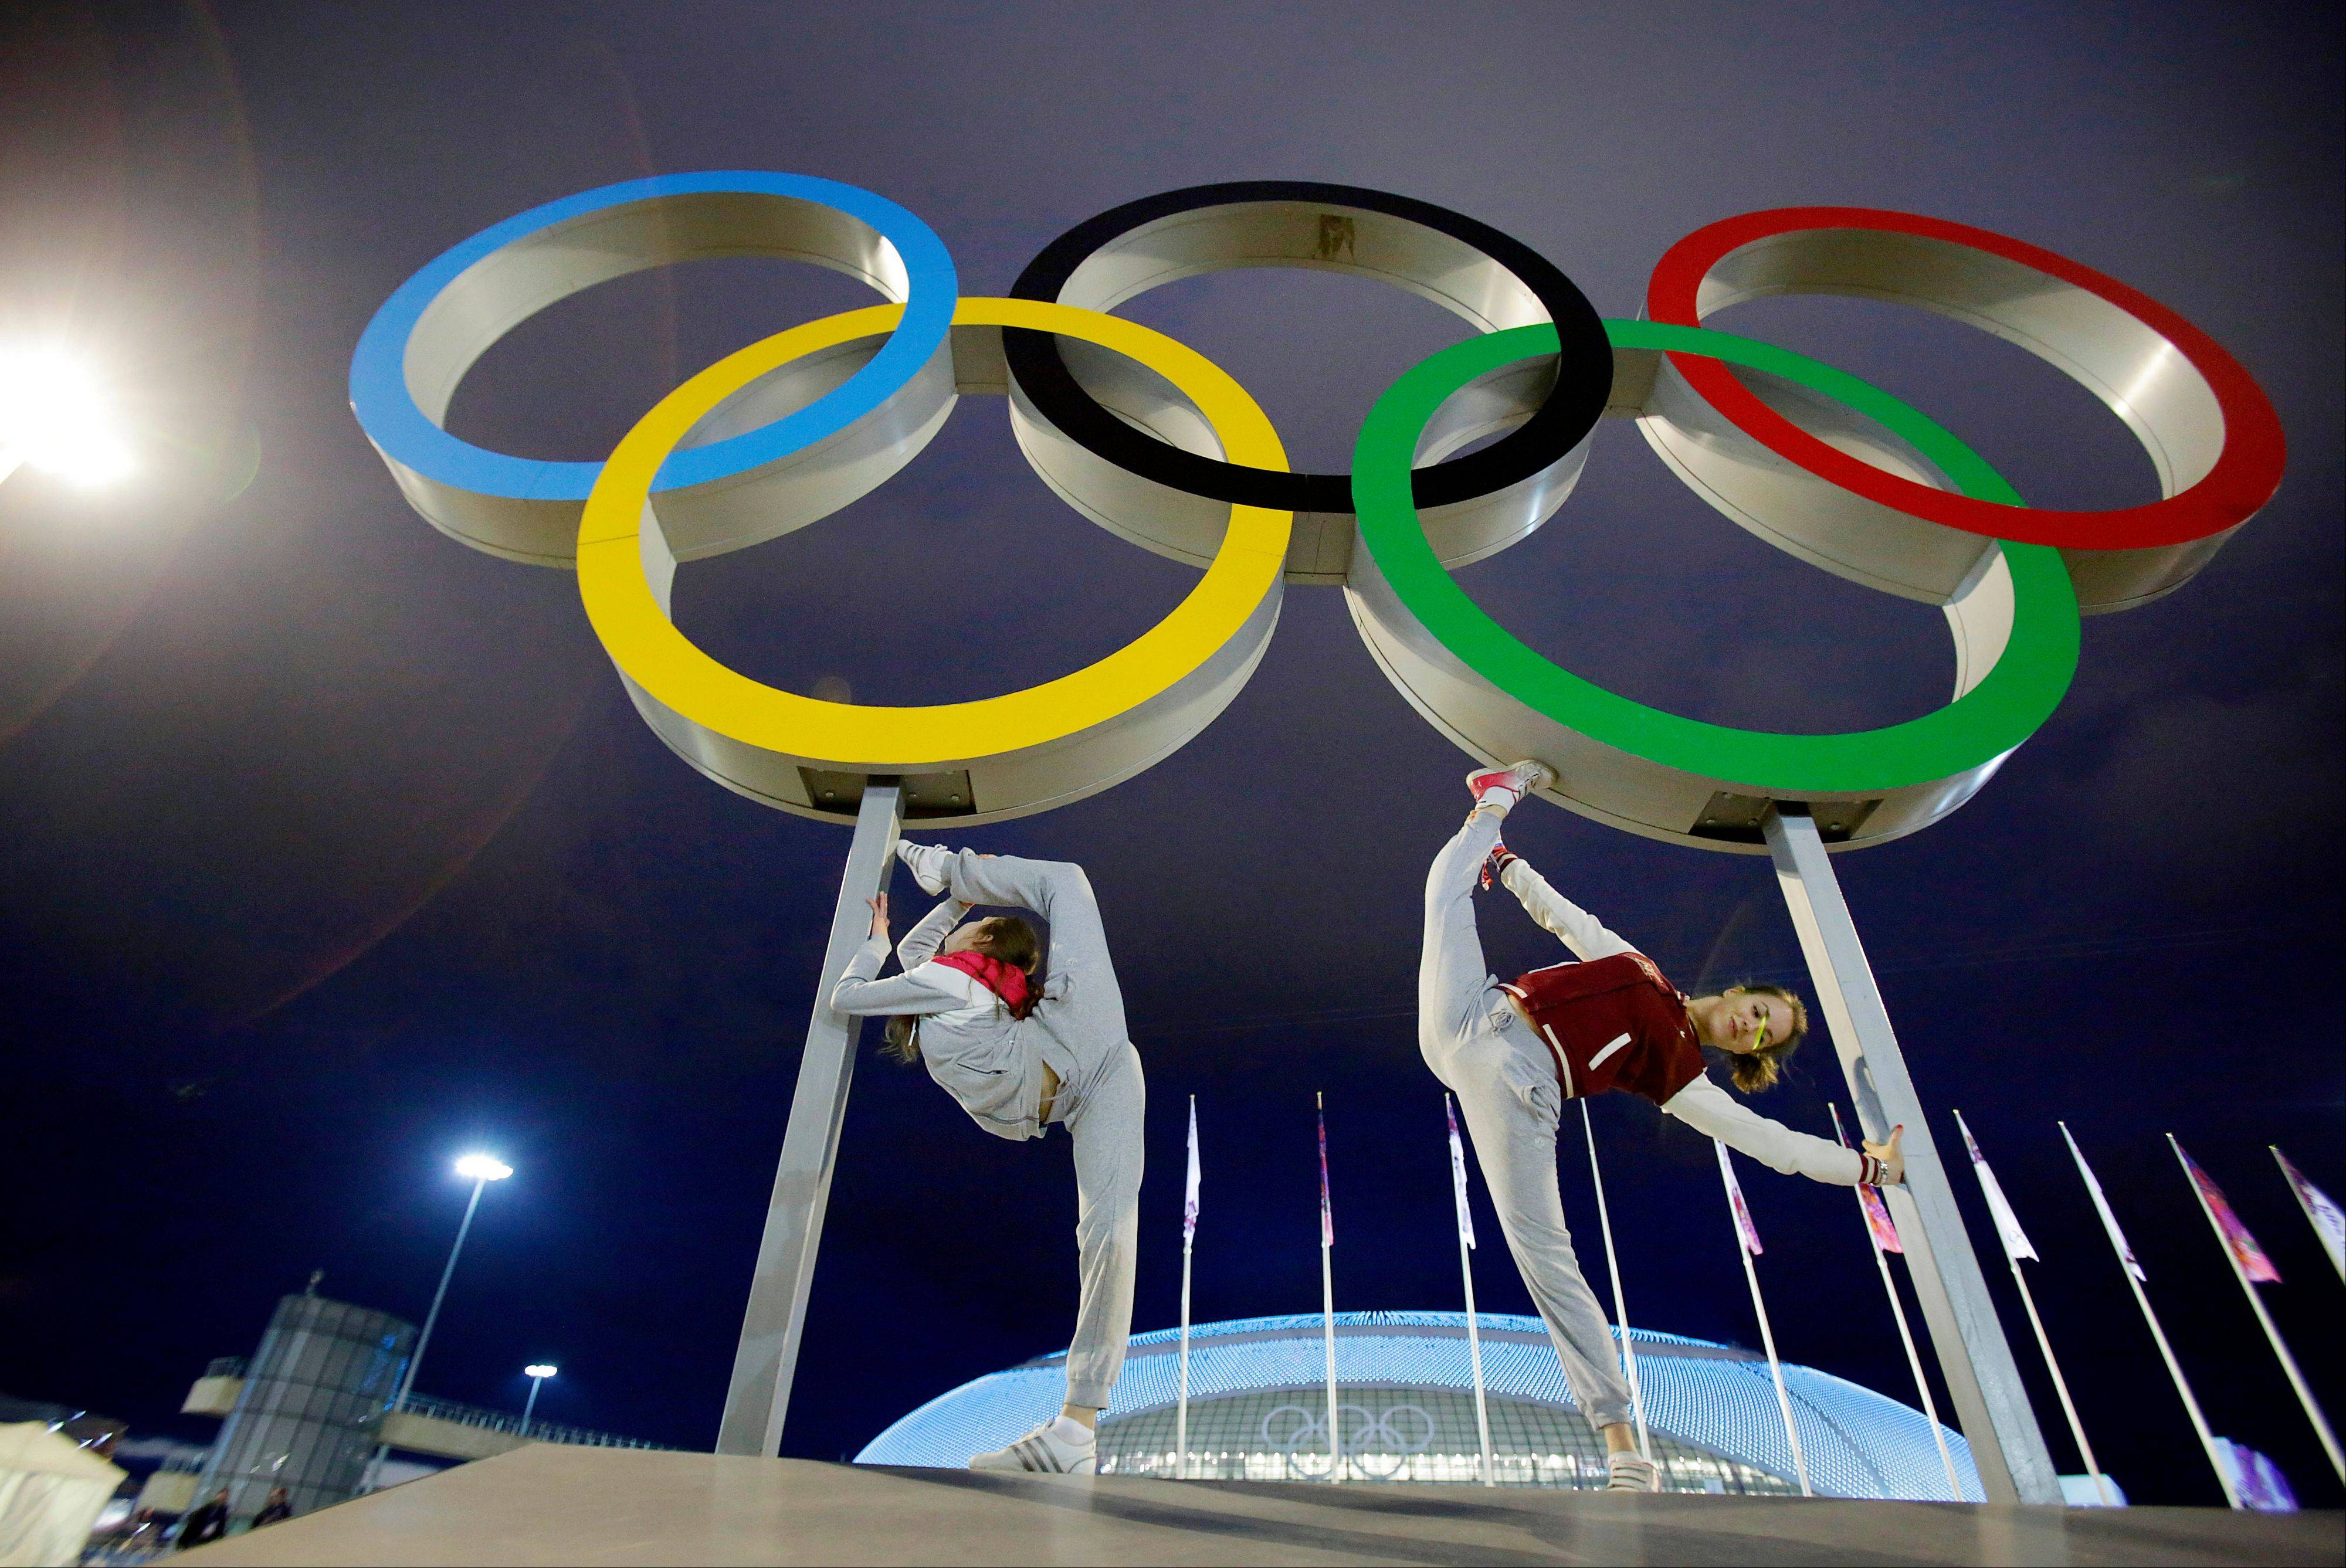 Russian dancers who will be performing at the opening ceremony pose with the Olympic rings as their friend photographs them, ahead of the 2014 Winter Olympics, Thursday, Feb. 6, 2014, in Sochi, Russia. (AP Photo/Wong Maye-E)